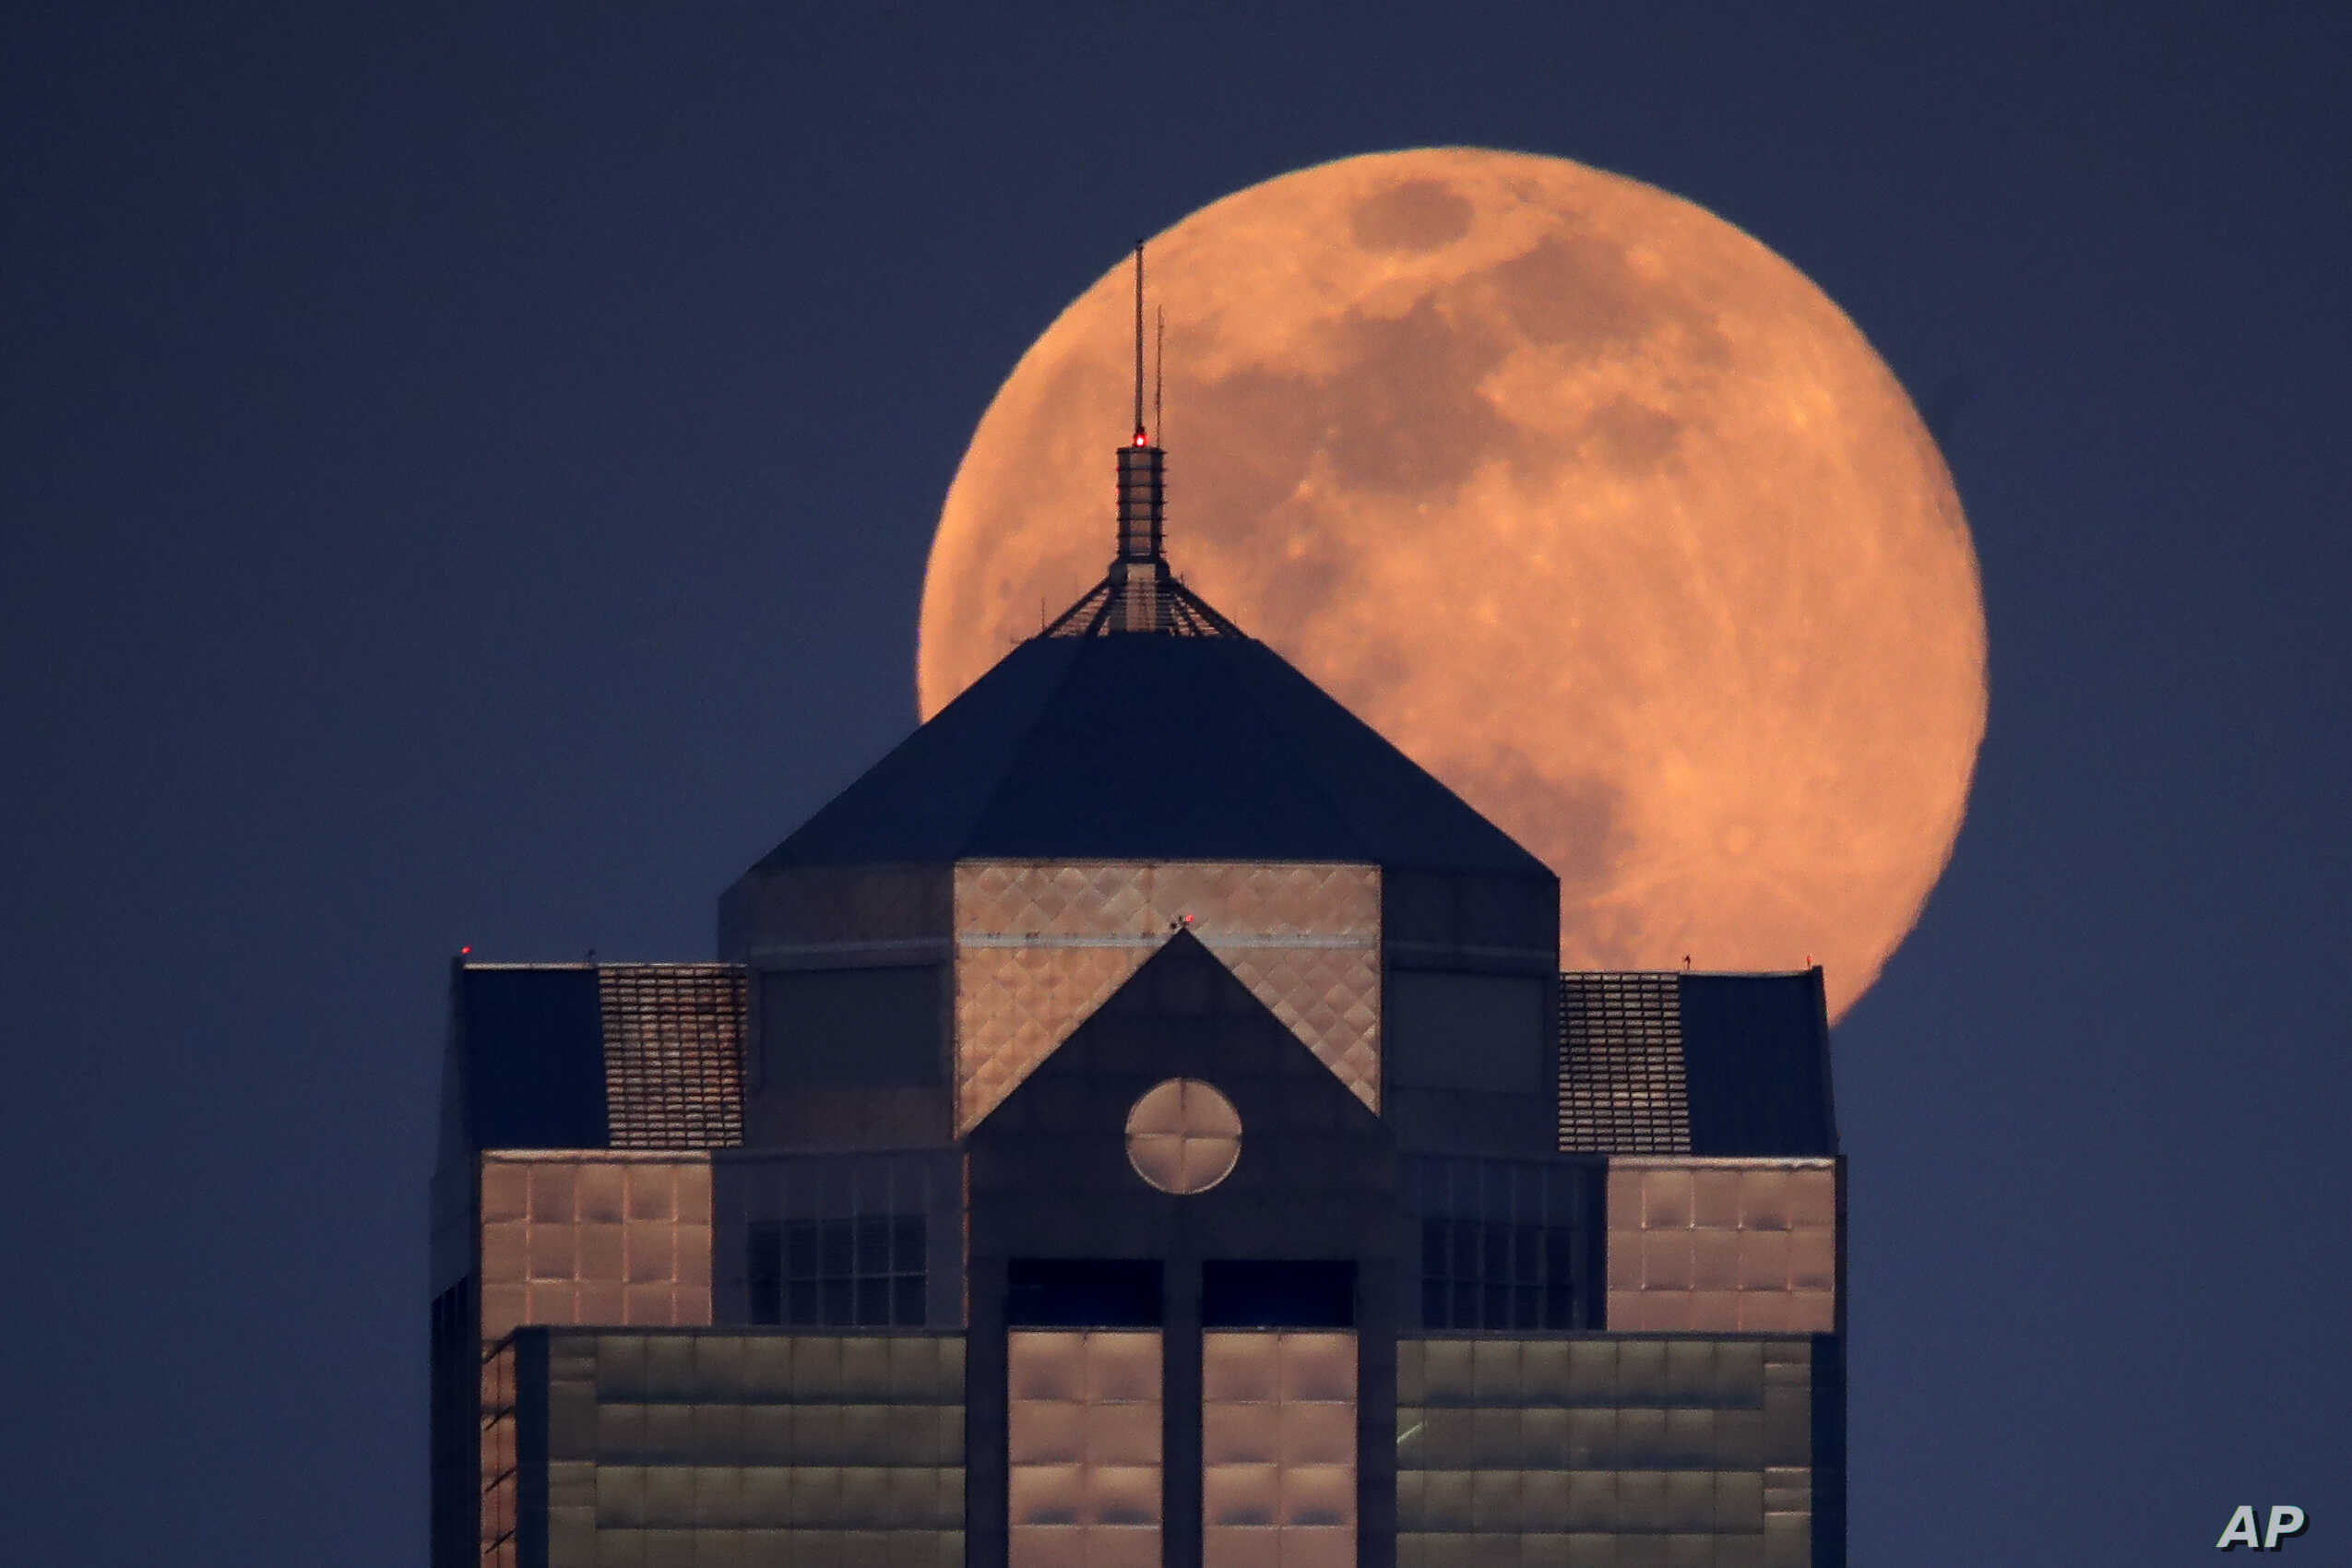 The supermoon rises behind a downtown office building in Kansas City Mo. Tuesday